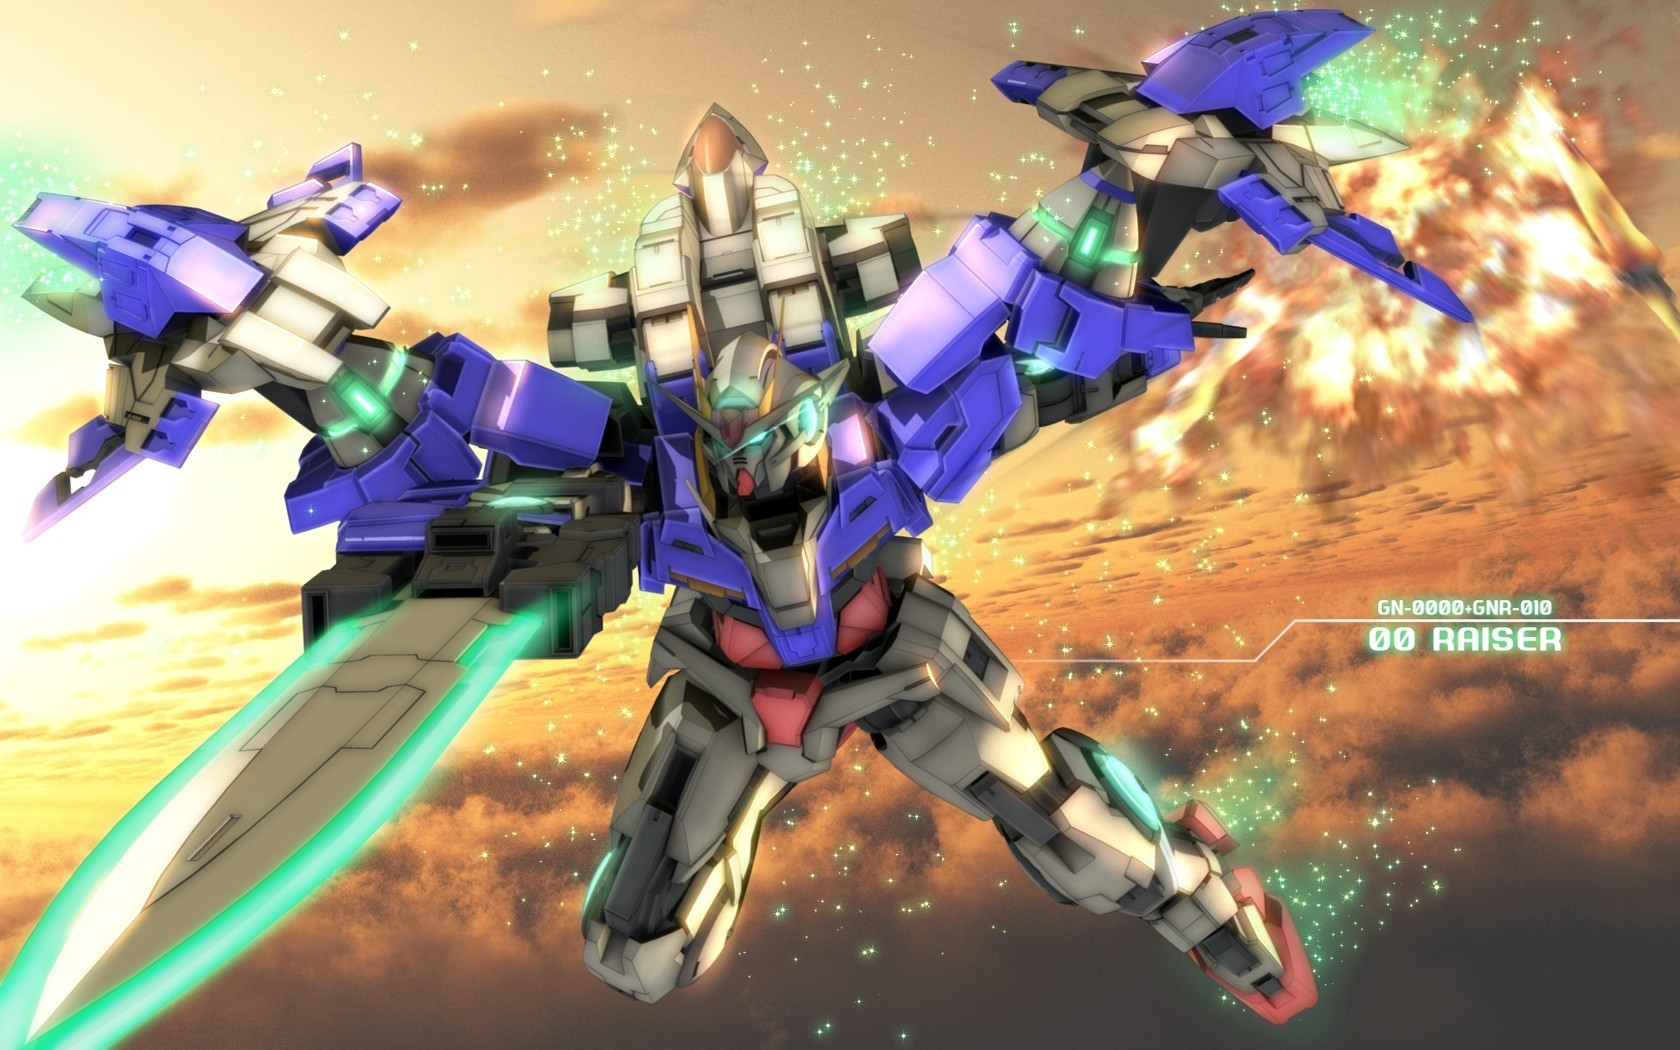 gundam Mobile Suit Gundam HD Wallpaper